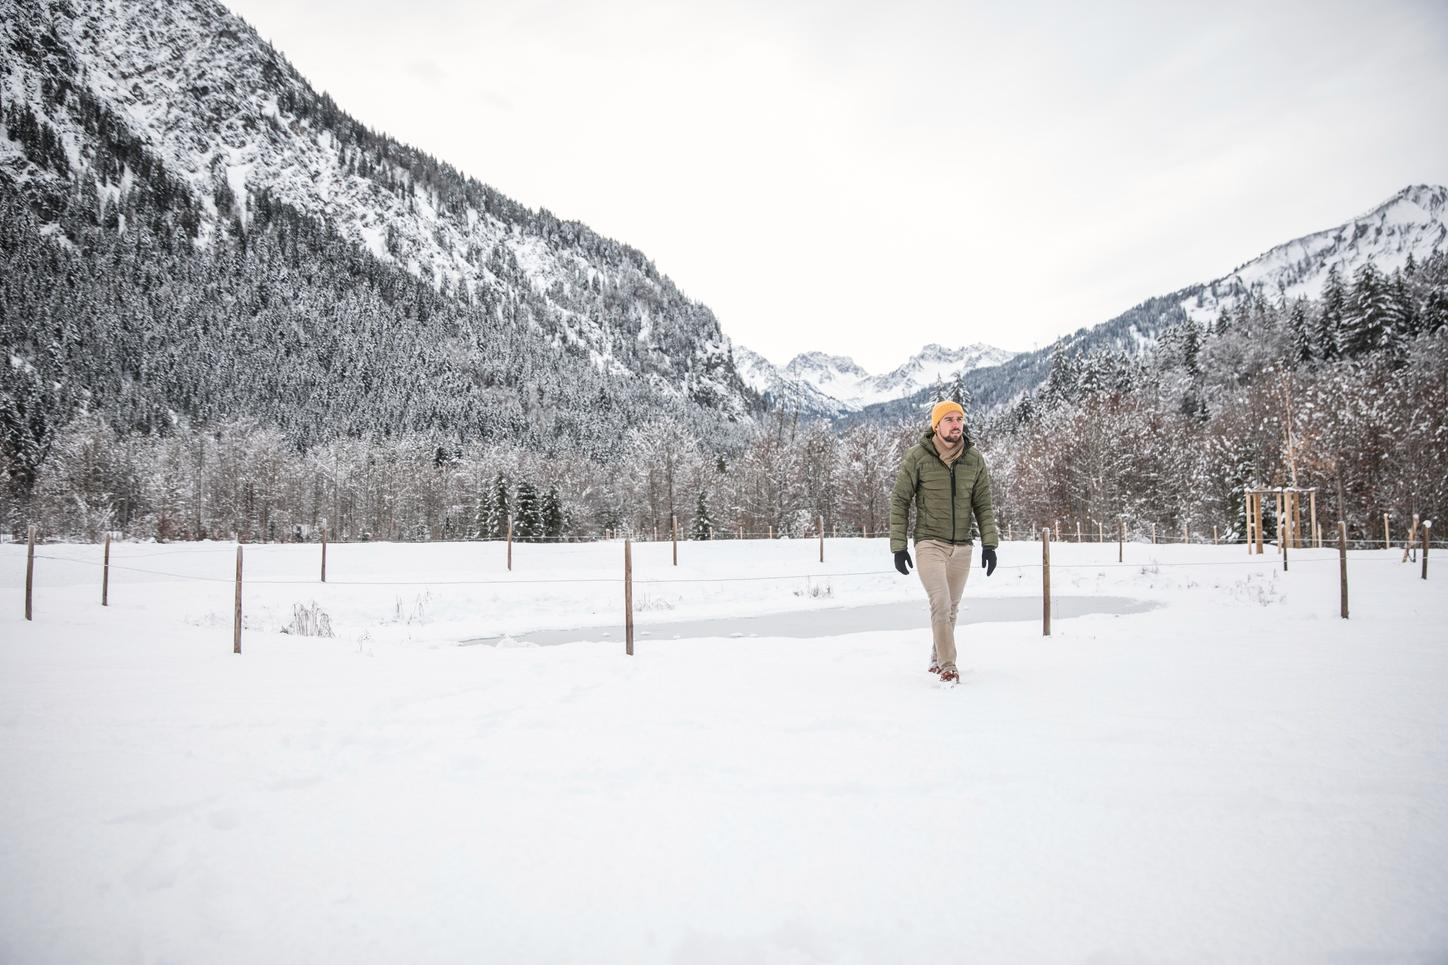 The picture shows the Nordic combined Johannes Rydzek in front of a wintry backdrop in Oberstdorf